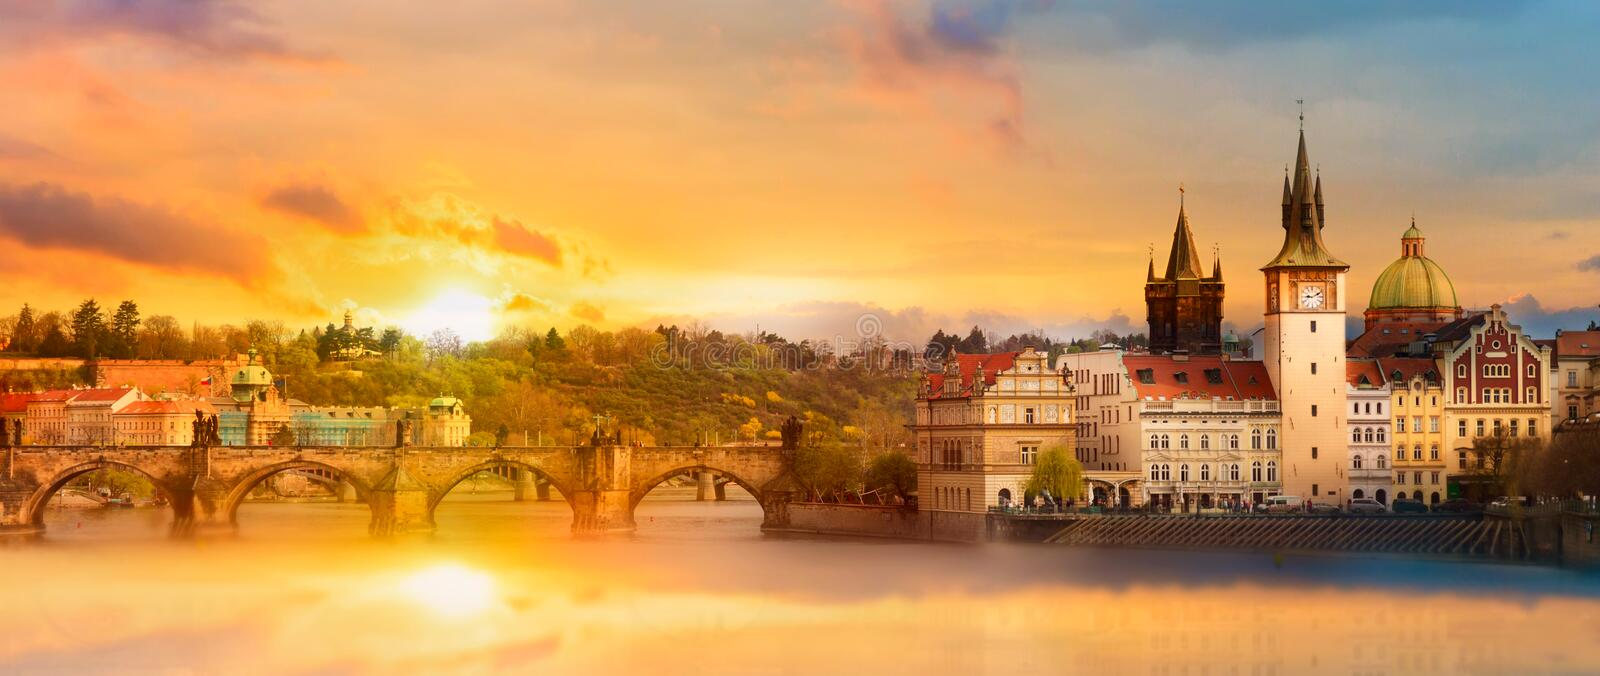 Scenic summer view of the Old Town buildings, Charles bridge and Vltava river in Prague during amazing sunset, Czech Republic.  stock images